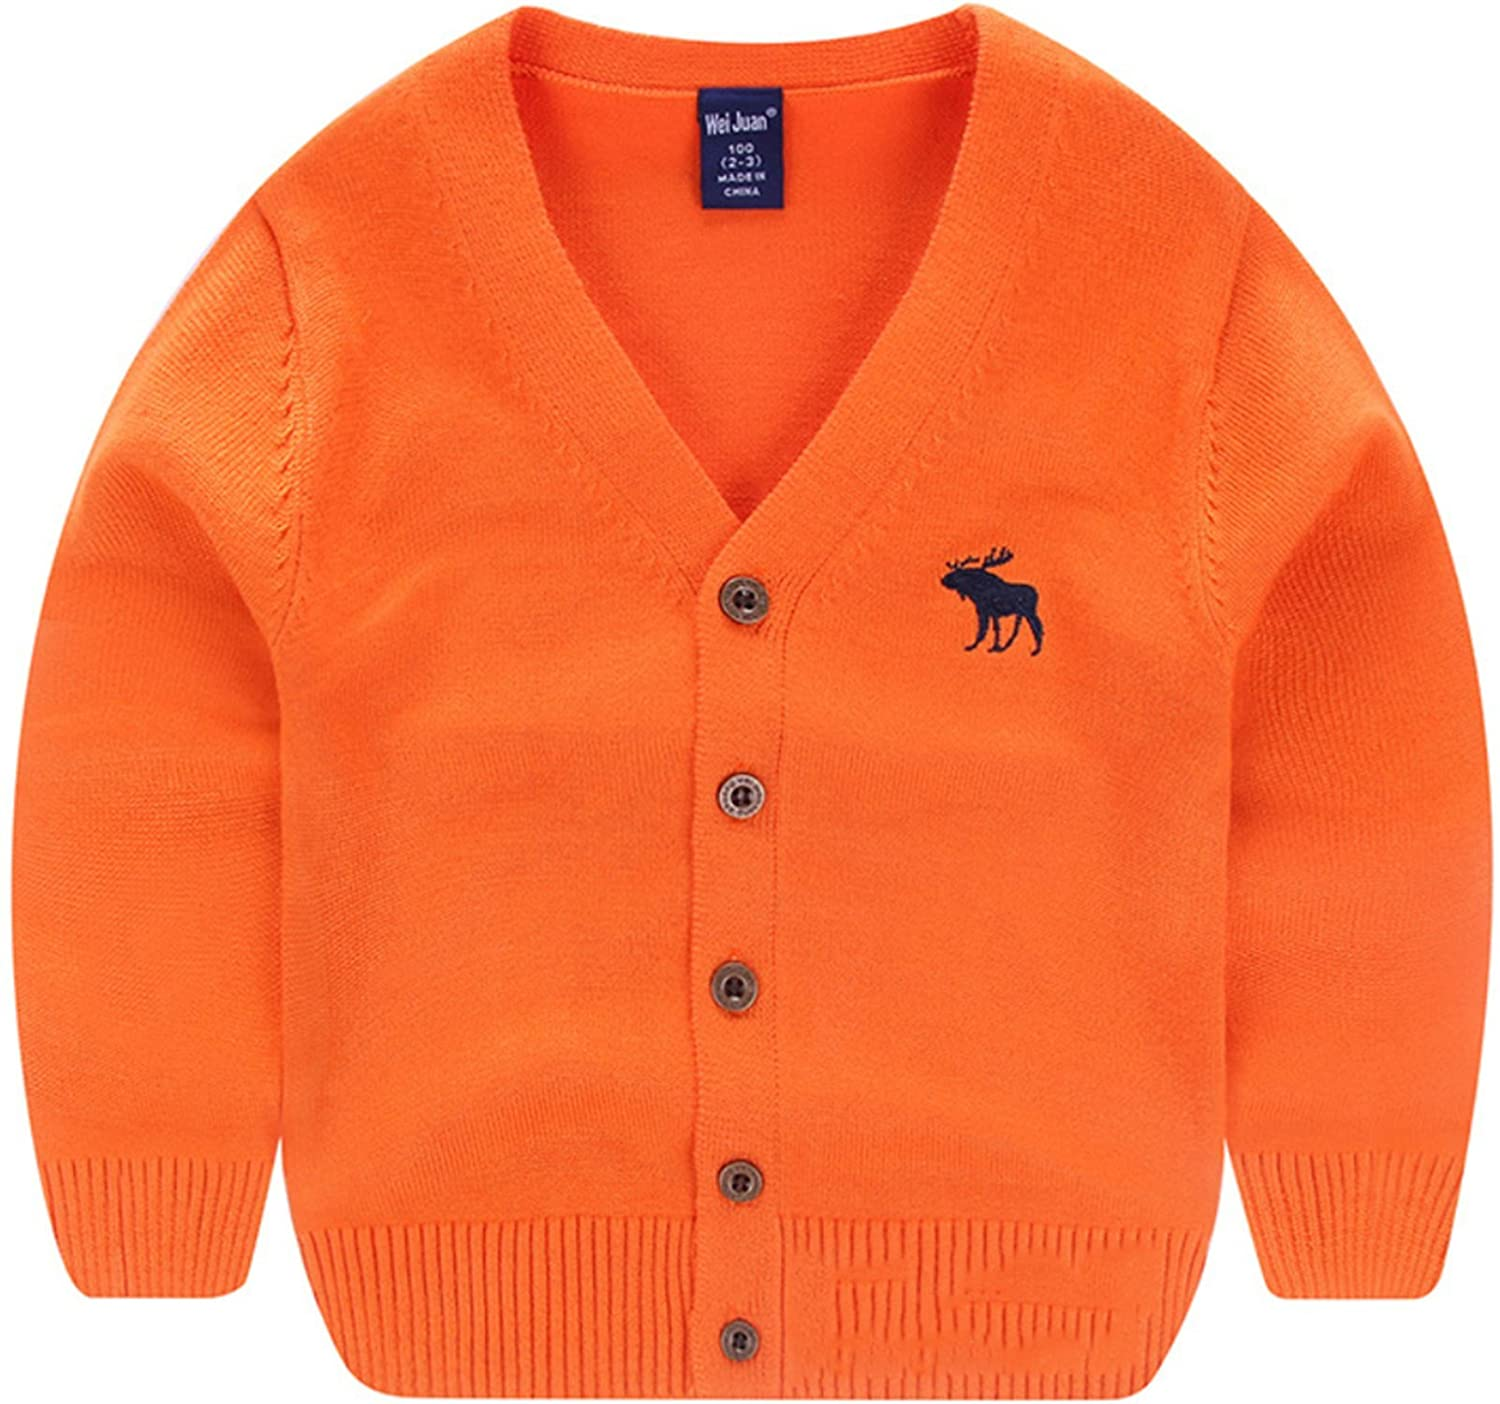 AUIE SAOSA Little Boys Spring and Autumn Solid Color Knitted Cotton Coat Cardigan V Neck Warm Sweater